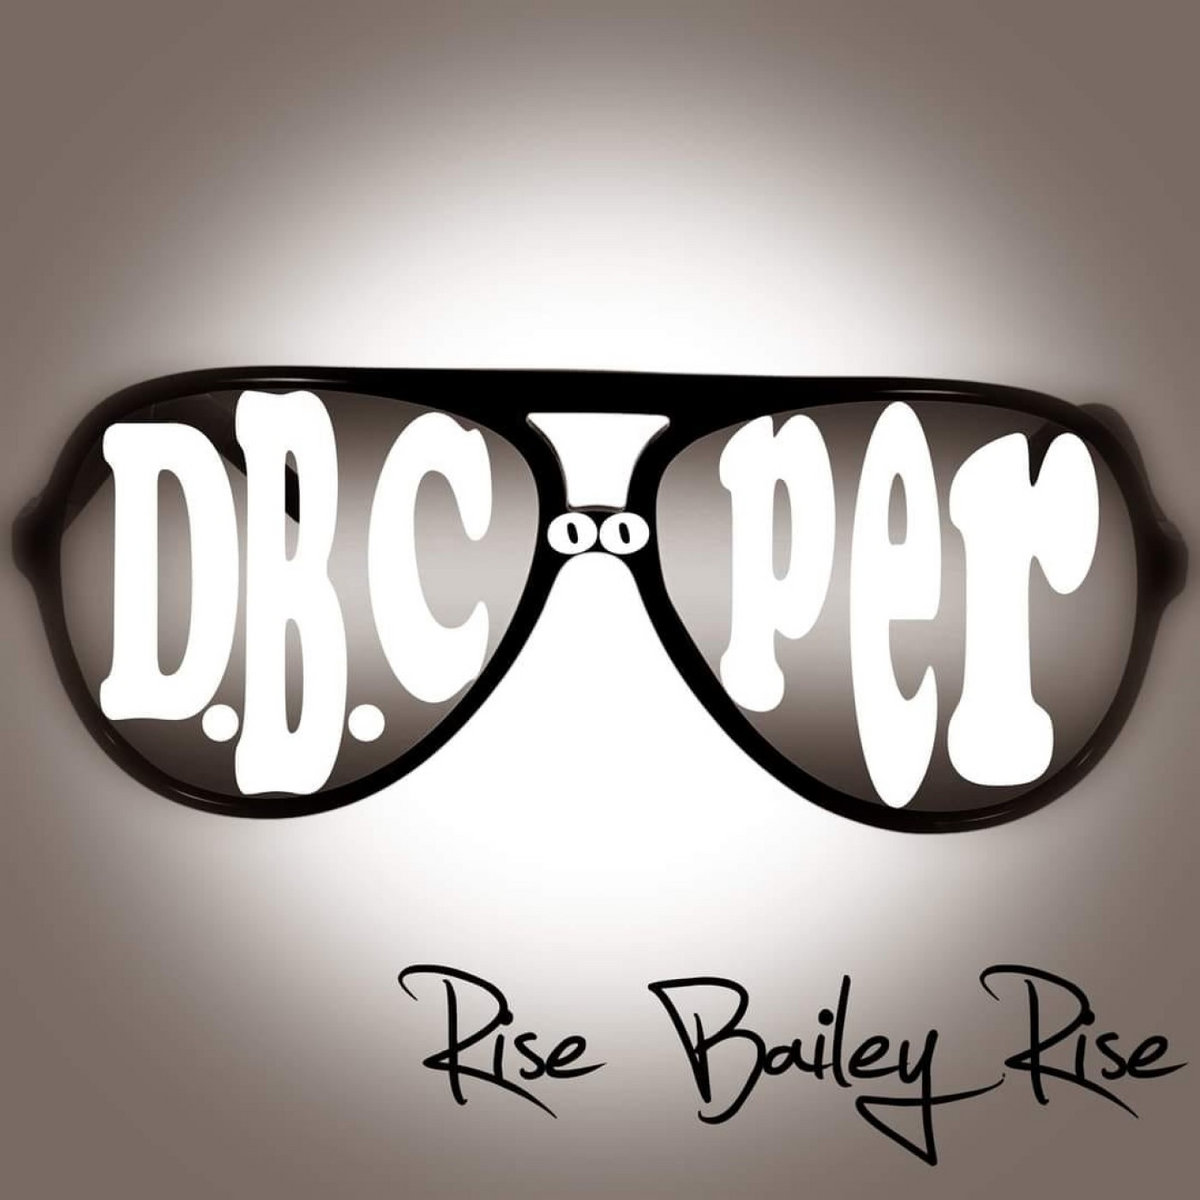 D.B. Cooper by Rise Bailey Rise